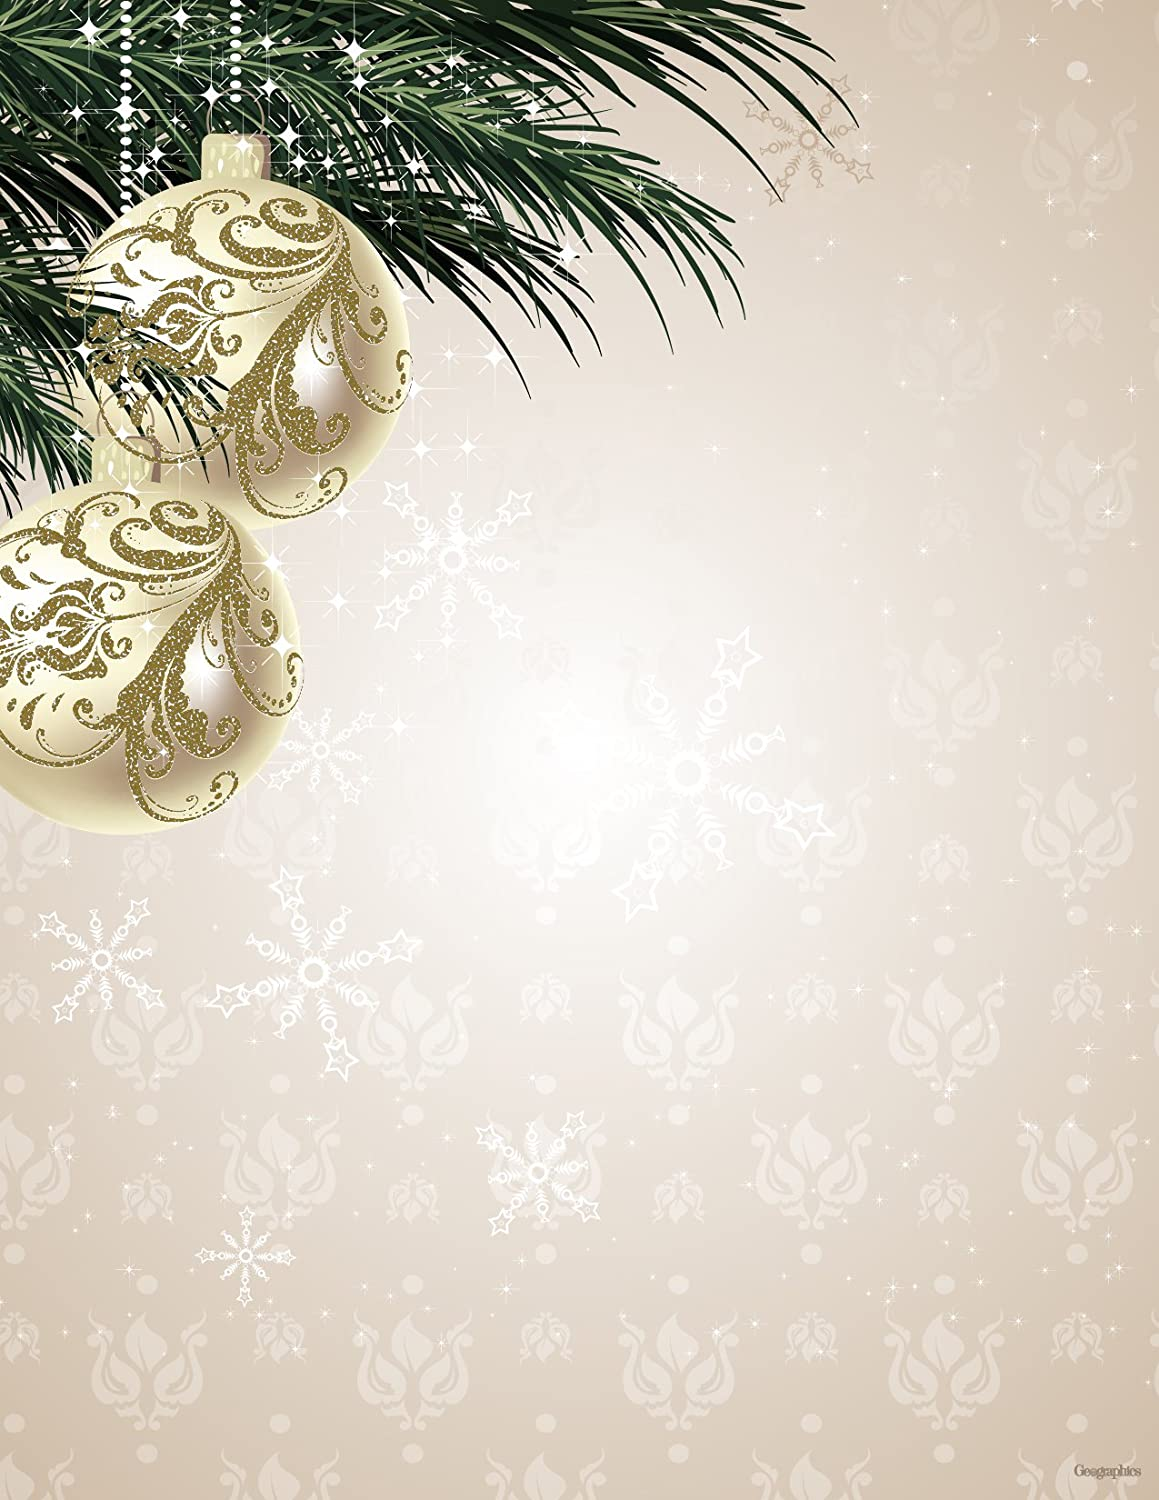 Amazon.com : Ornaments & Pine Gold Foil Christmas Letterhead, 8.5 ...